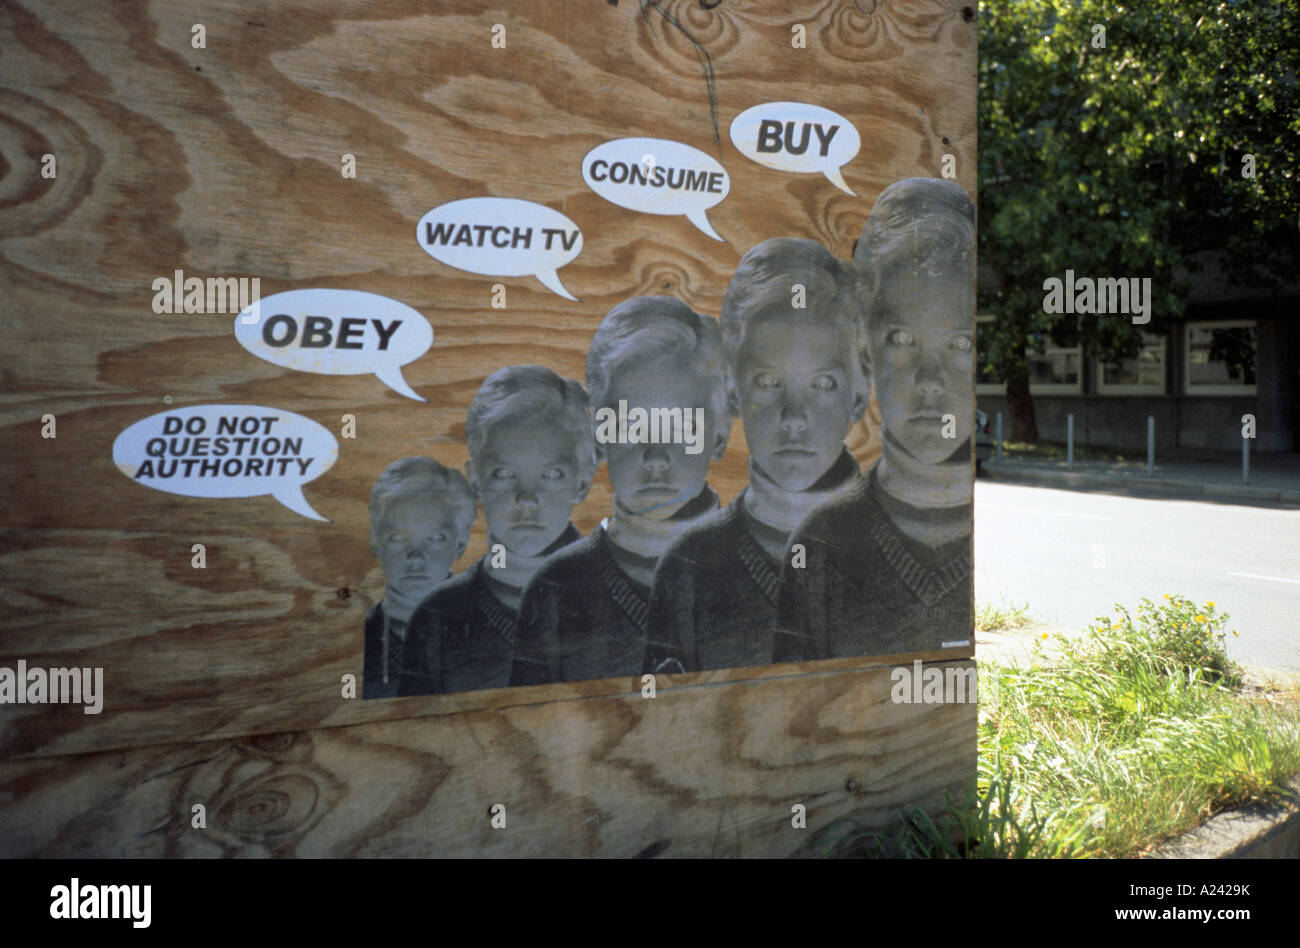 A poster on a wooden wall criticizing consumerism in Stuttgart Germany - Stock Image